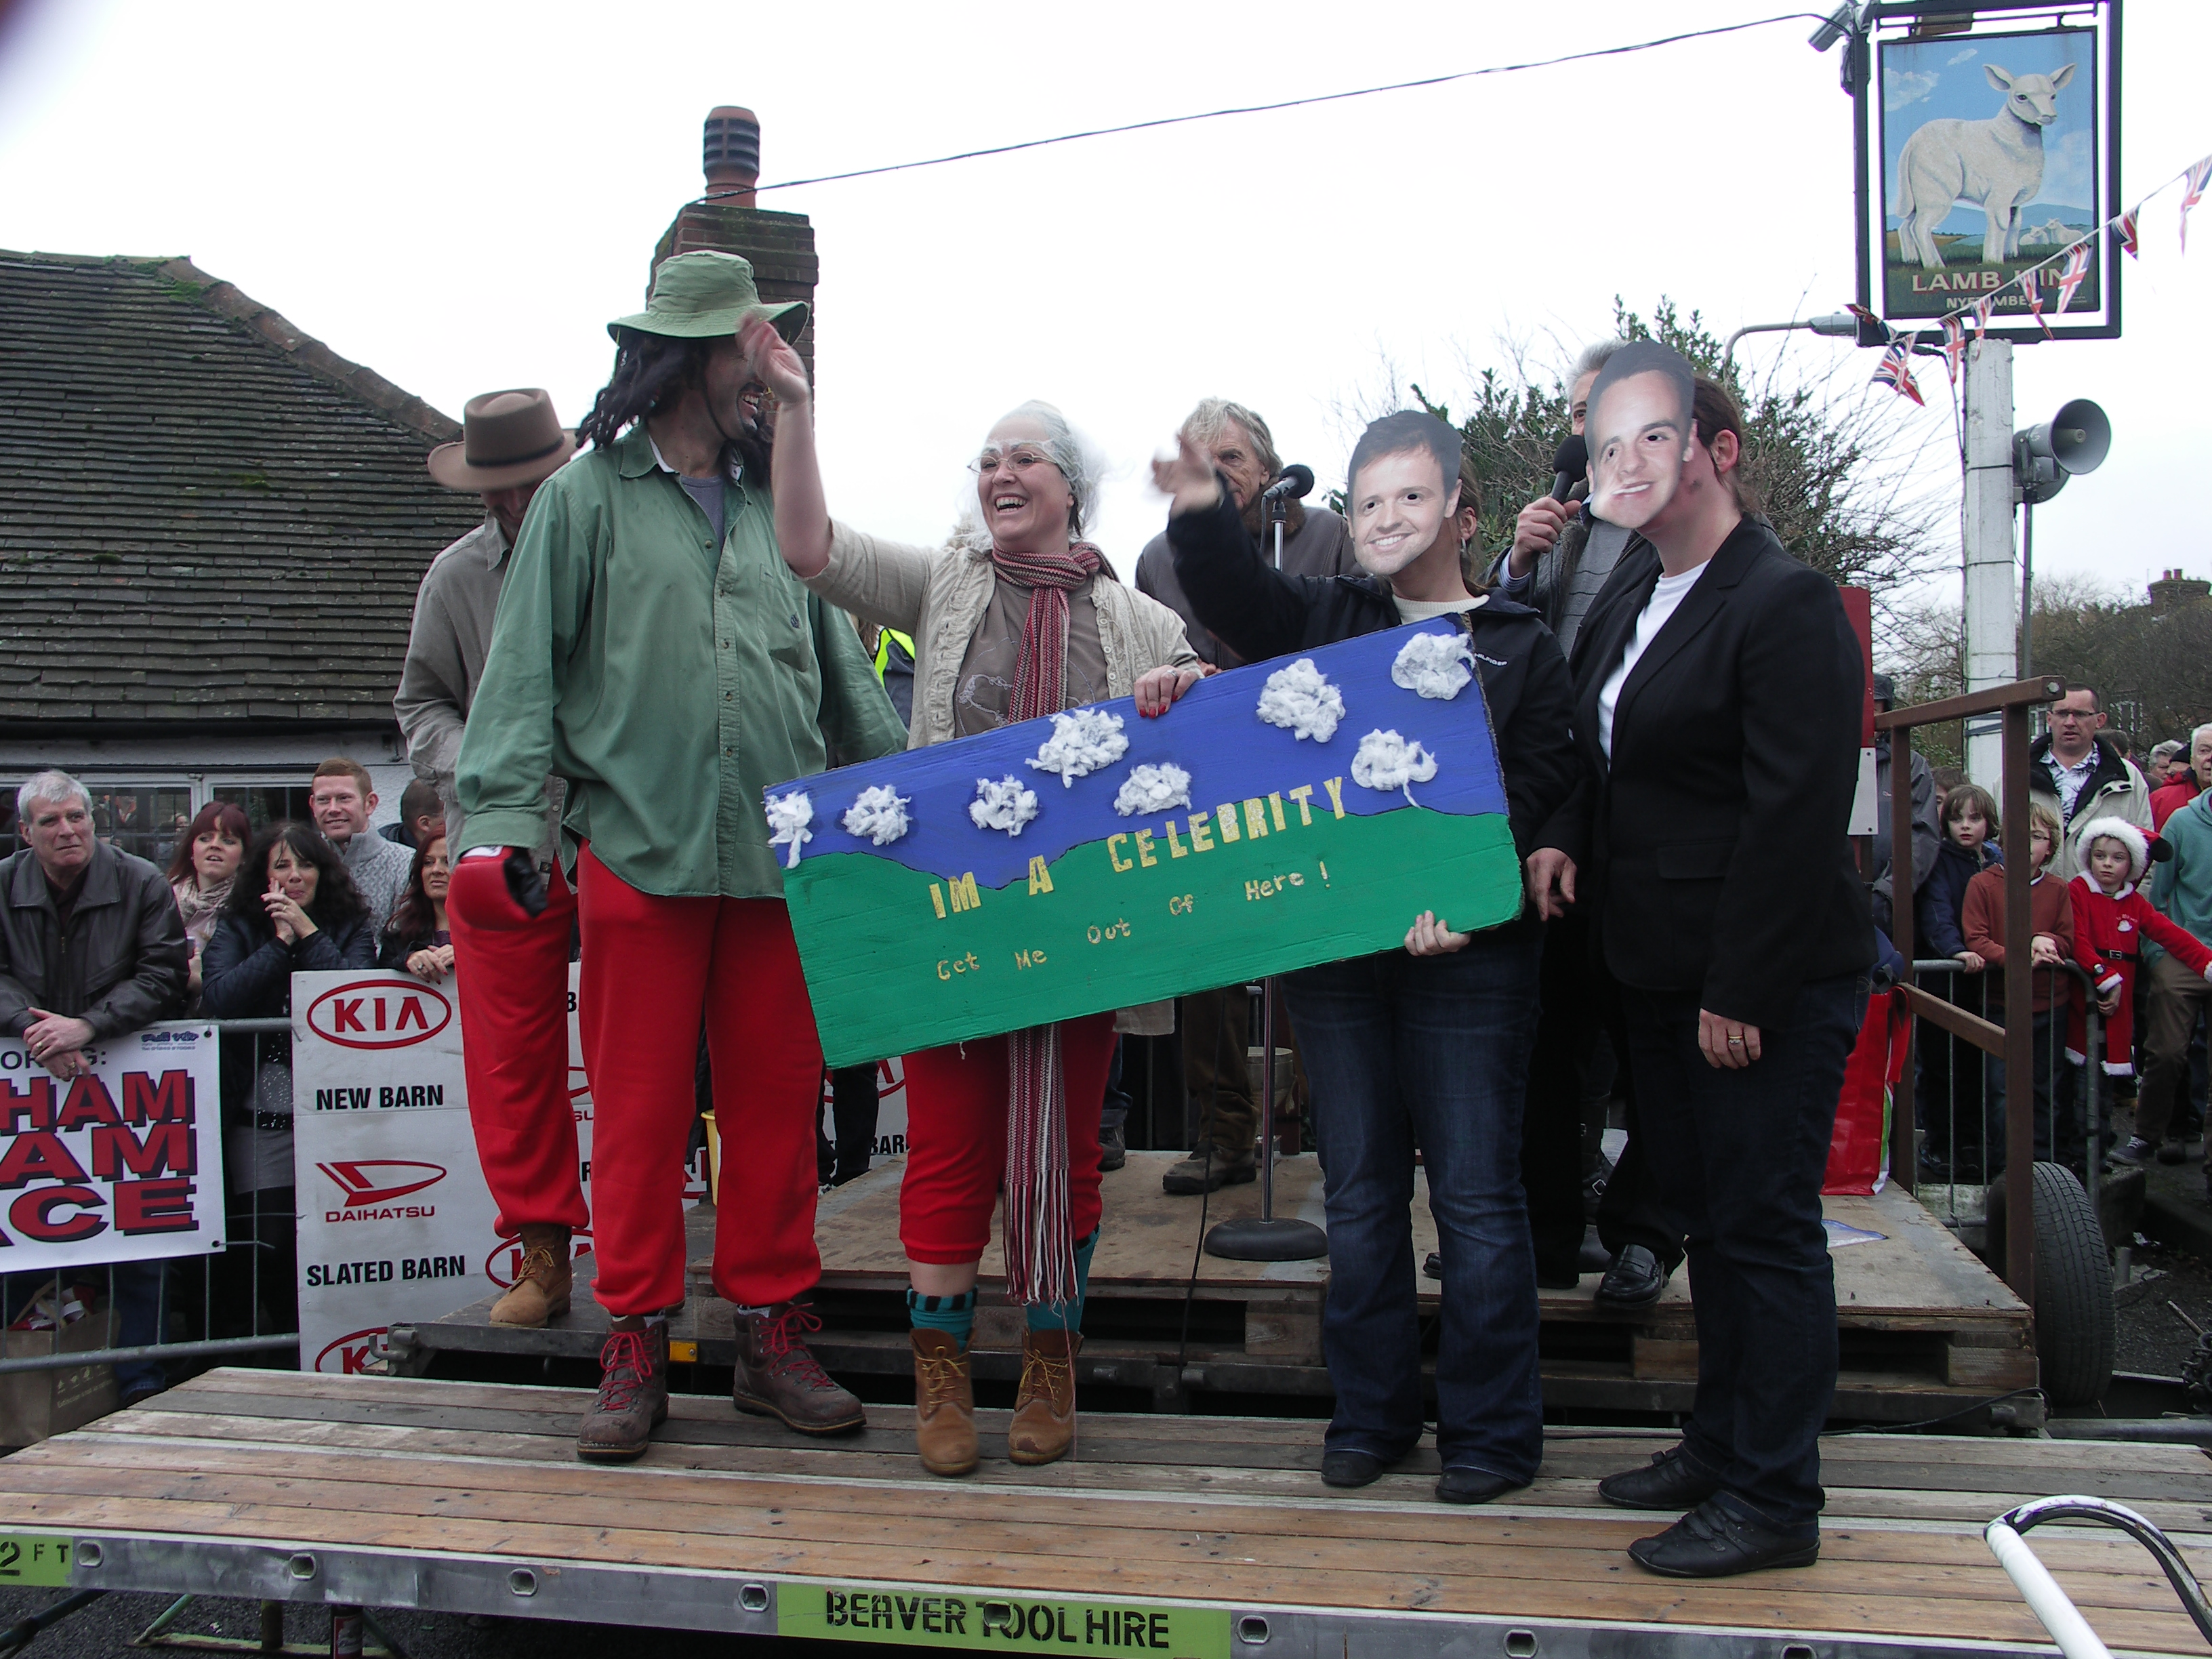 http://www.paghampramrace.com/wp-content/uploads/2018/04/PICT0090.jpg